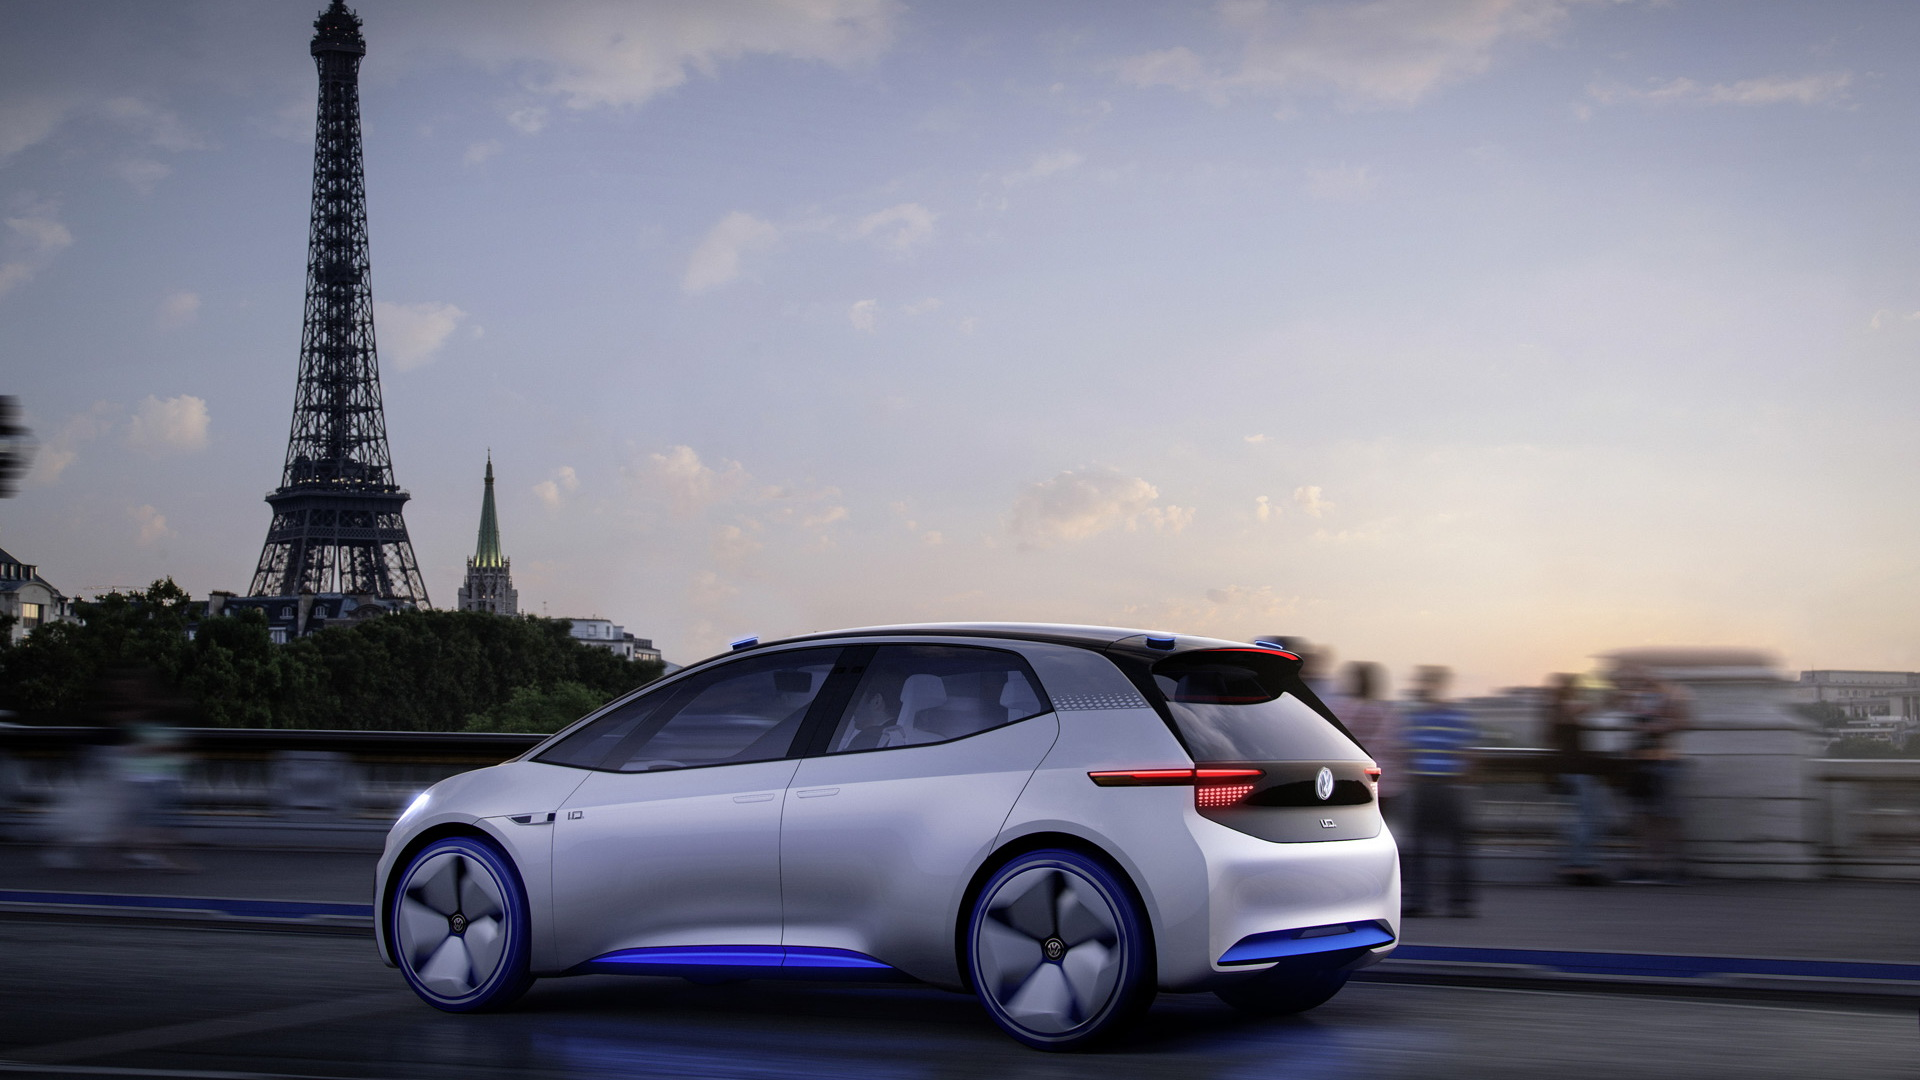 Volkswagen ID: More Details Of All-electric Concept Car At